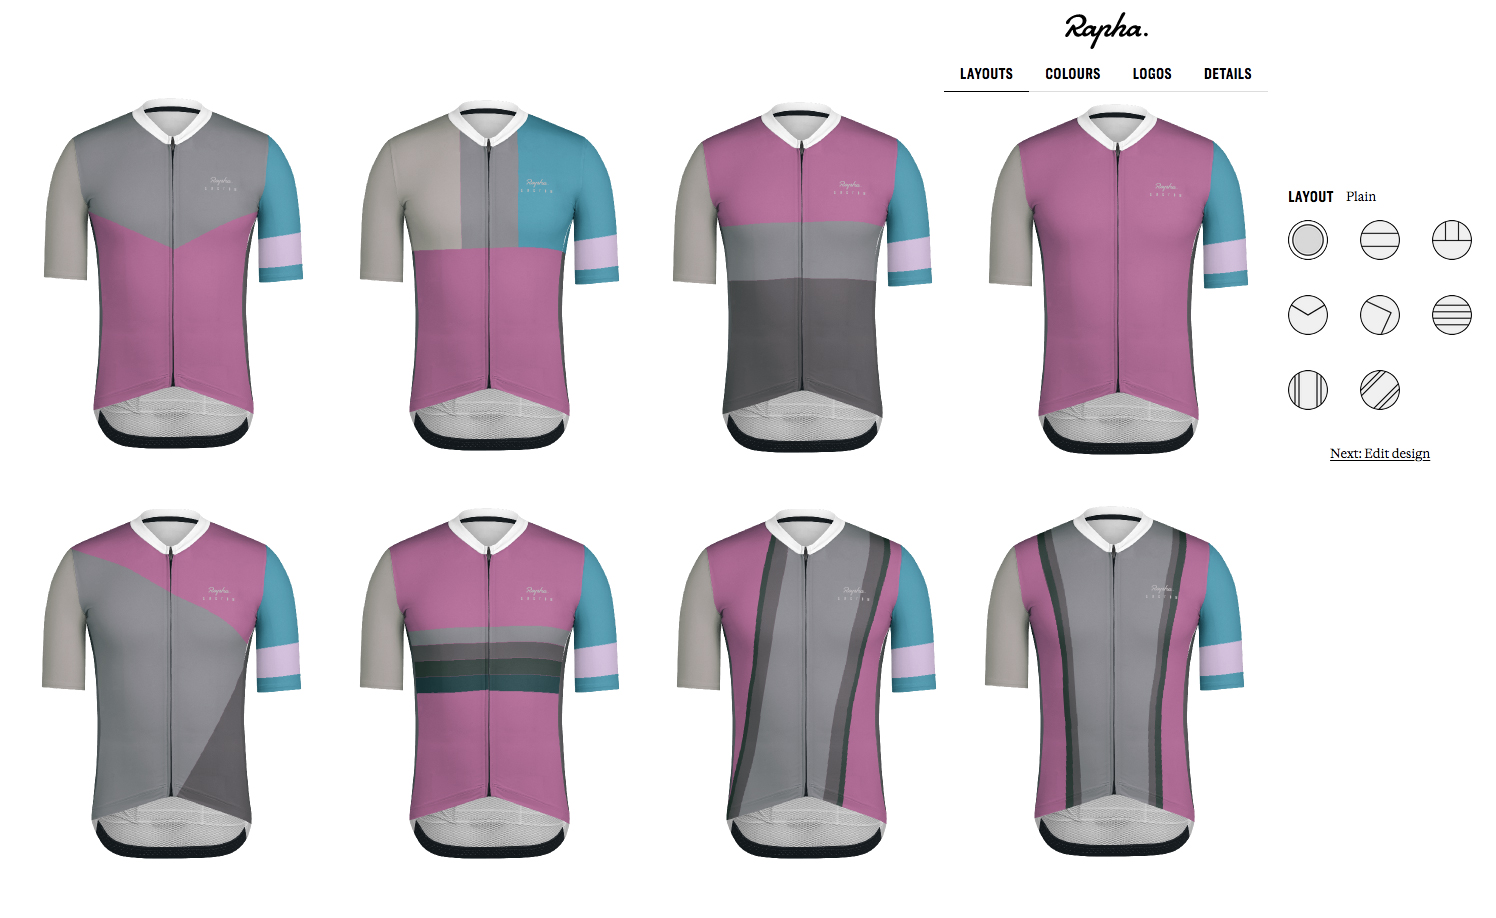 Rapha Custom Cycling apparel Pro Team jersey layouts